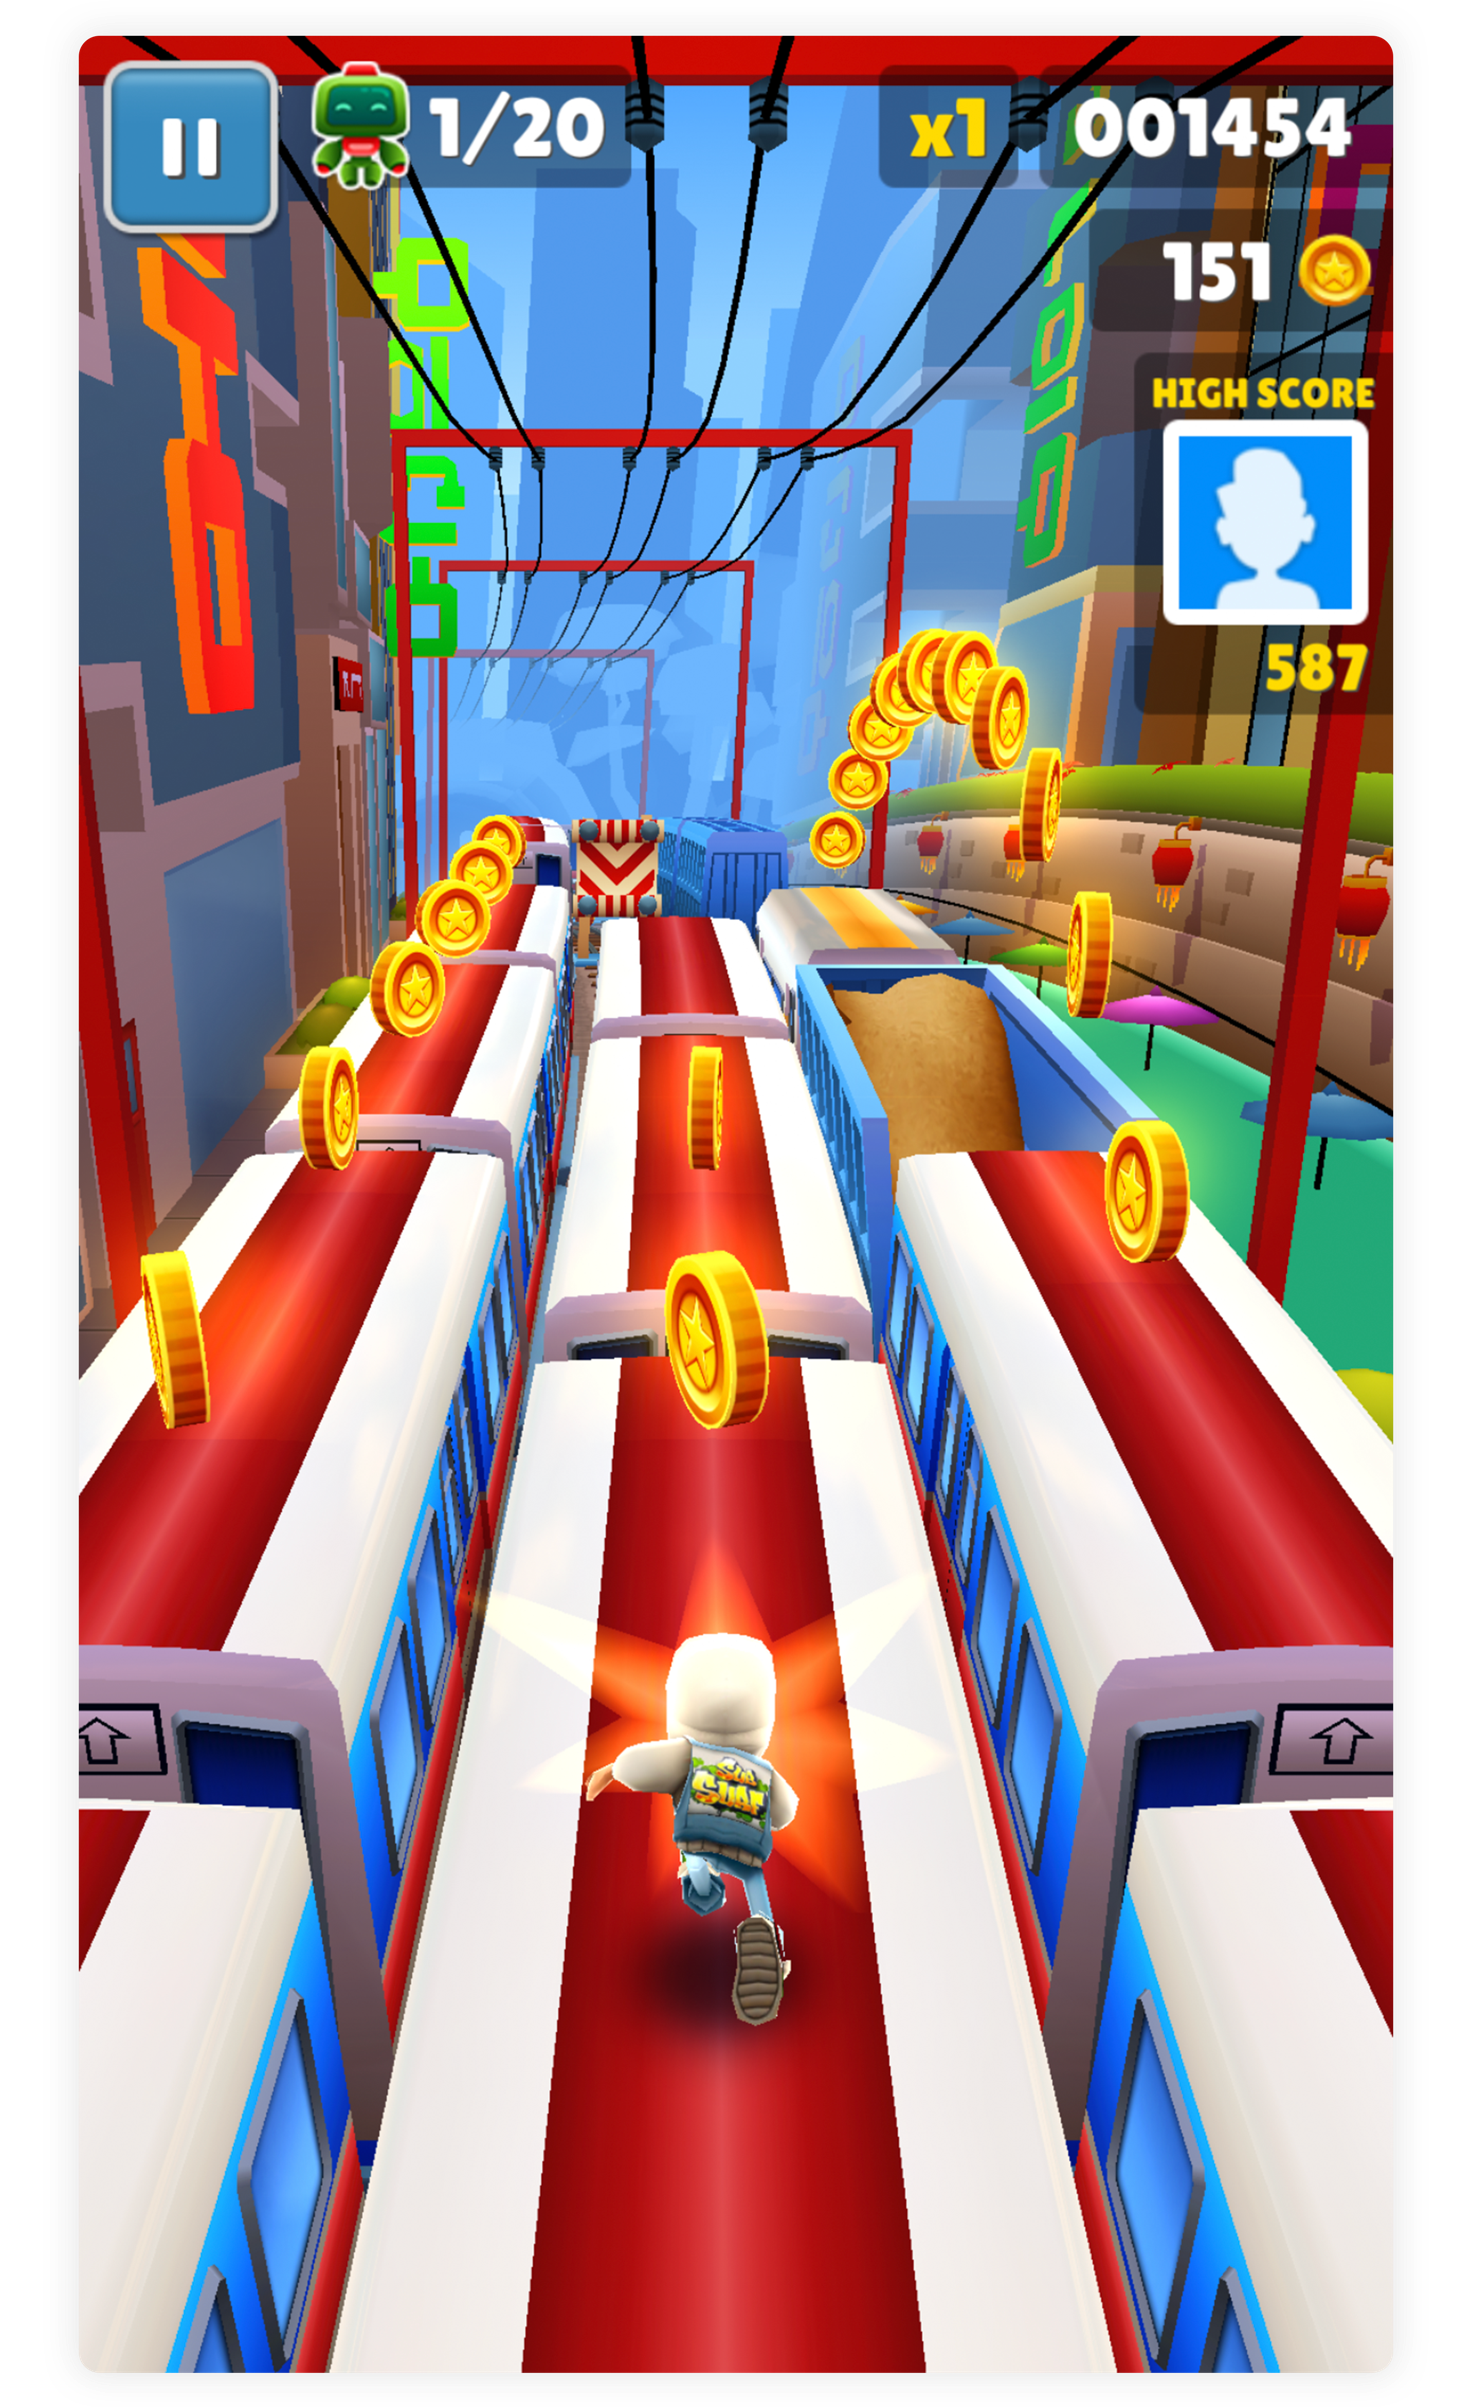 Game of the Day Subway Surfers in 2020 Subway surfers